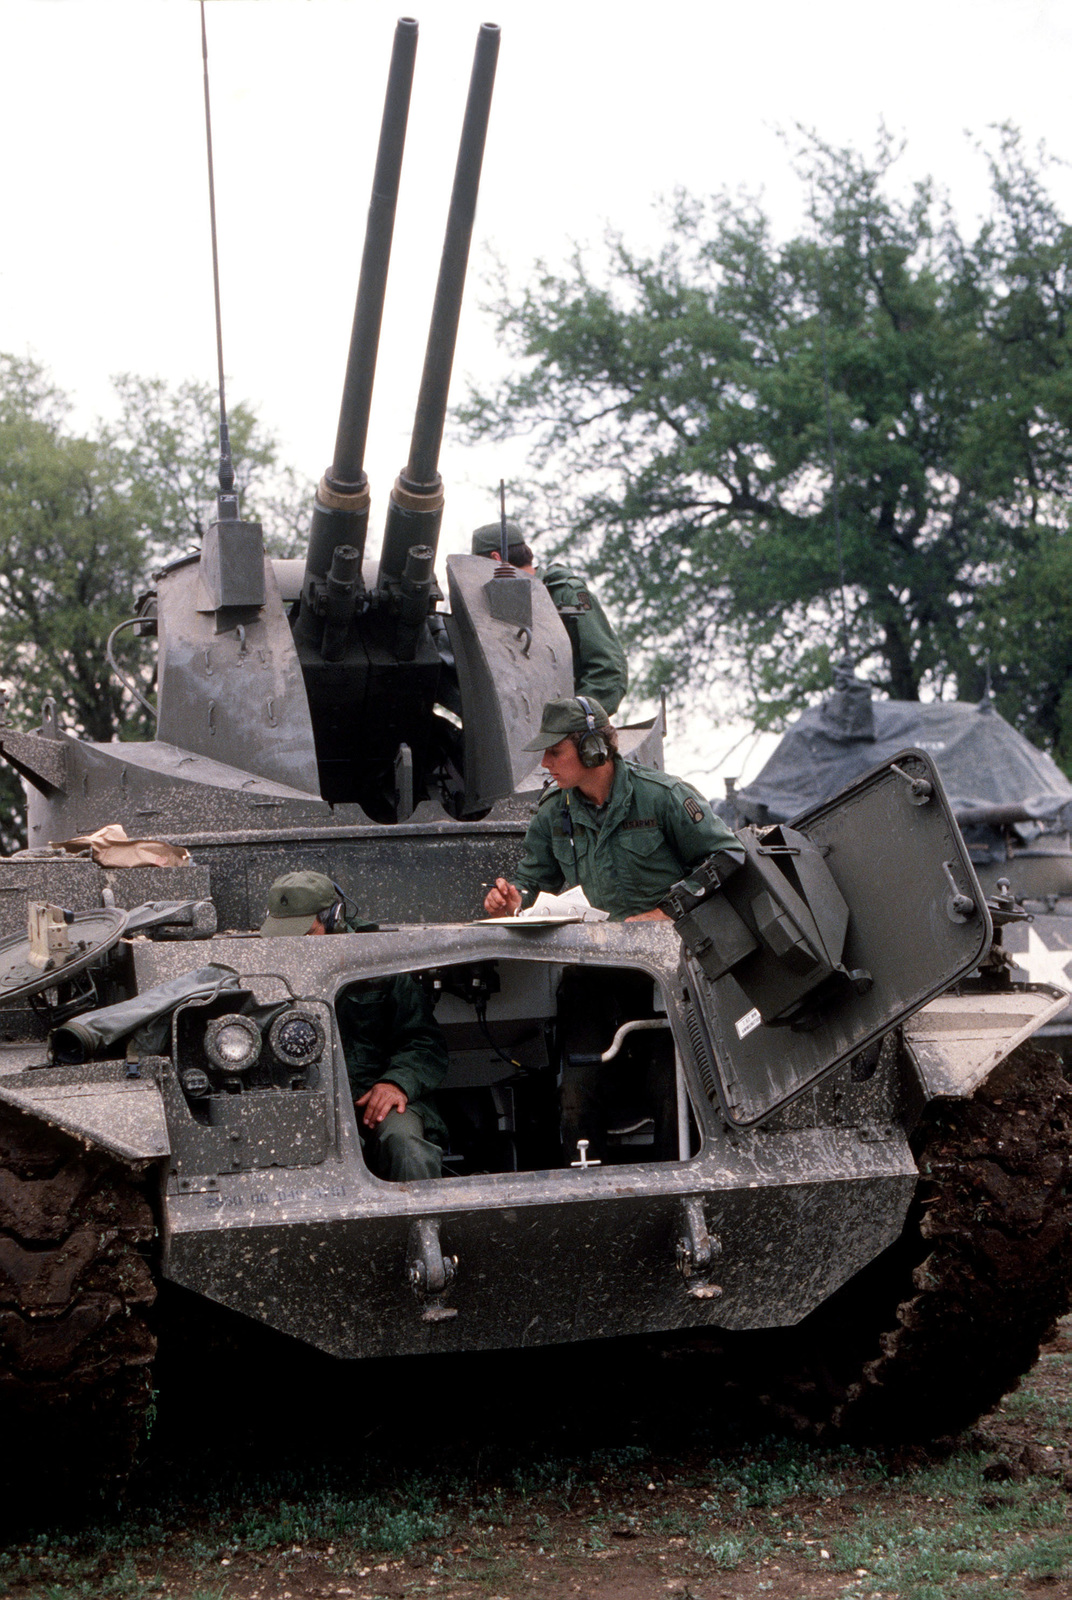 A front view of an M-42A1 40mm self-propelled anti-aircraft gun being prepared for action during joint Air Force and US Readiness Command training exercise Brave Shield XIX